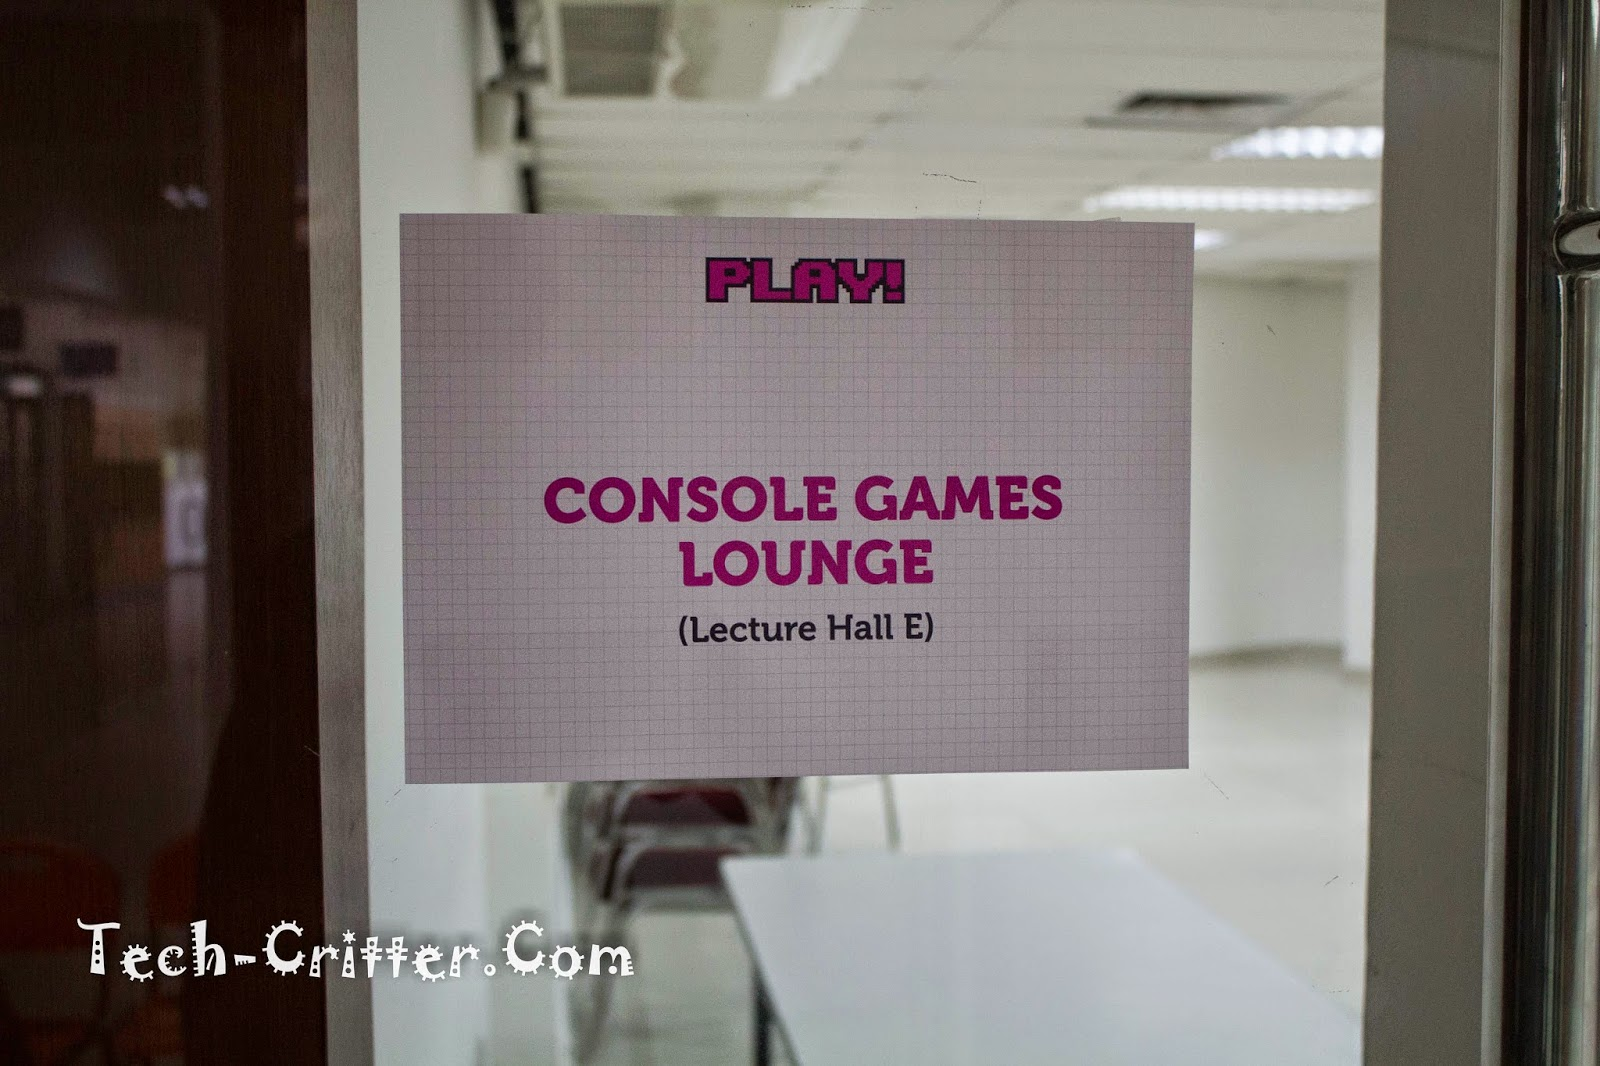 Coverage of PLAY! Convention @ KDU College 210